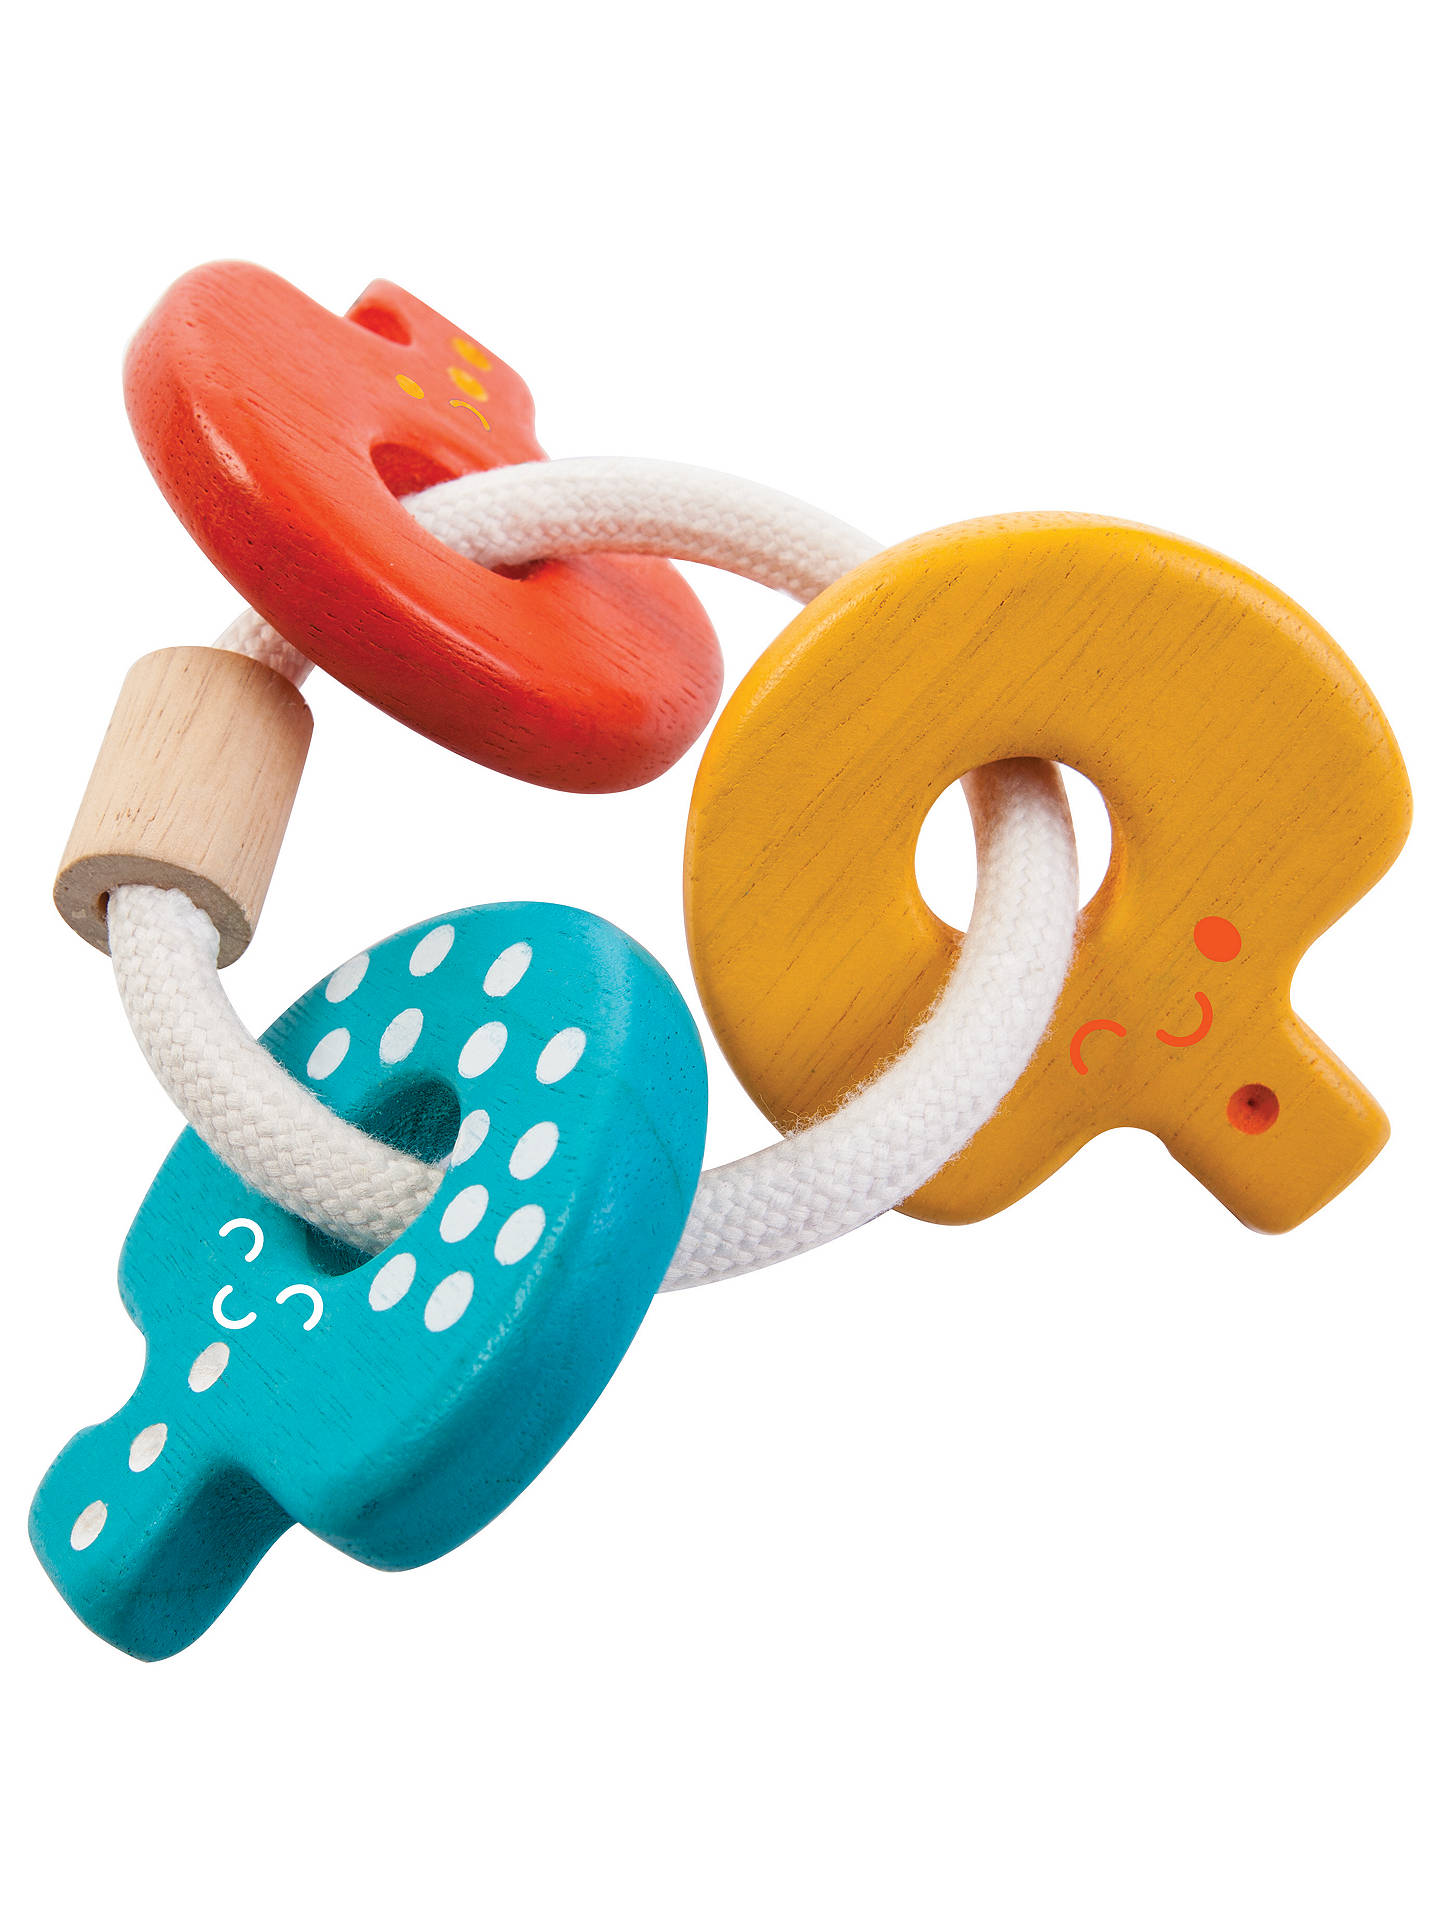 Plan Toys Baby Keys Rattle Toy At John Lewis Partners